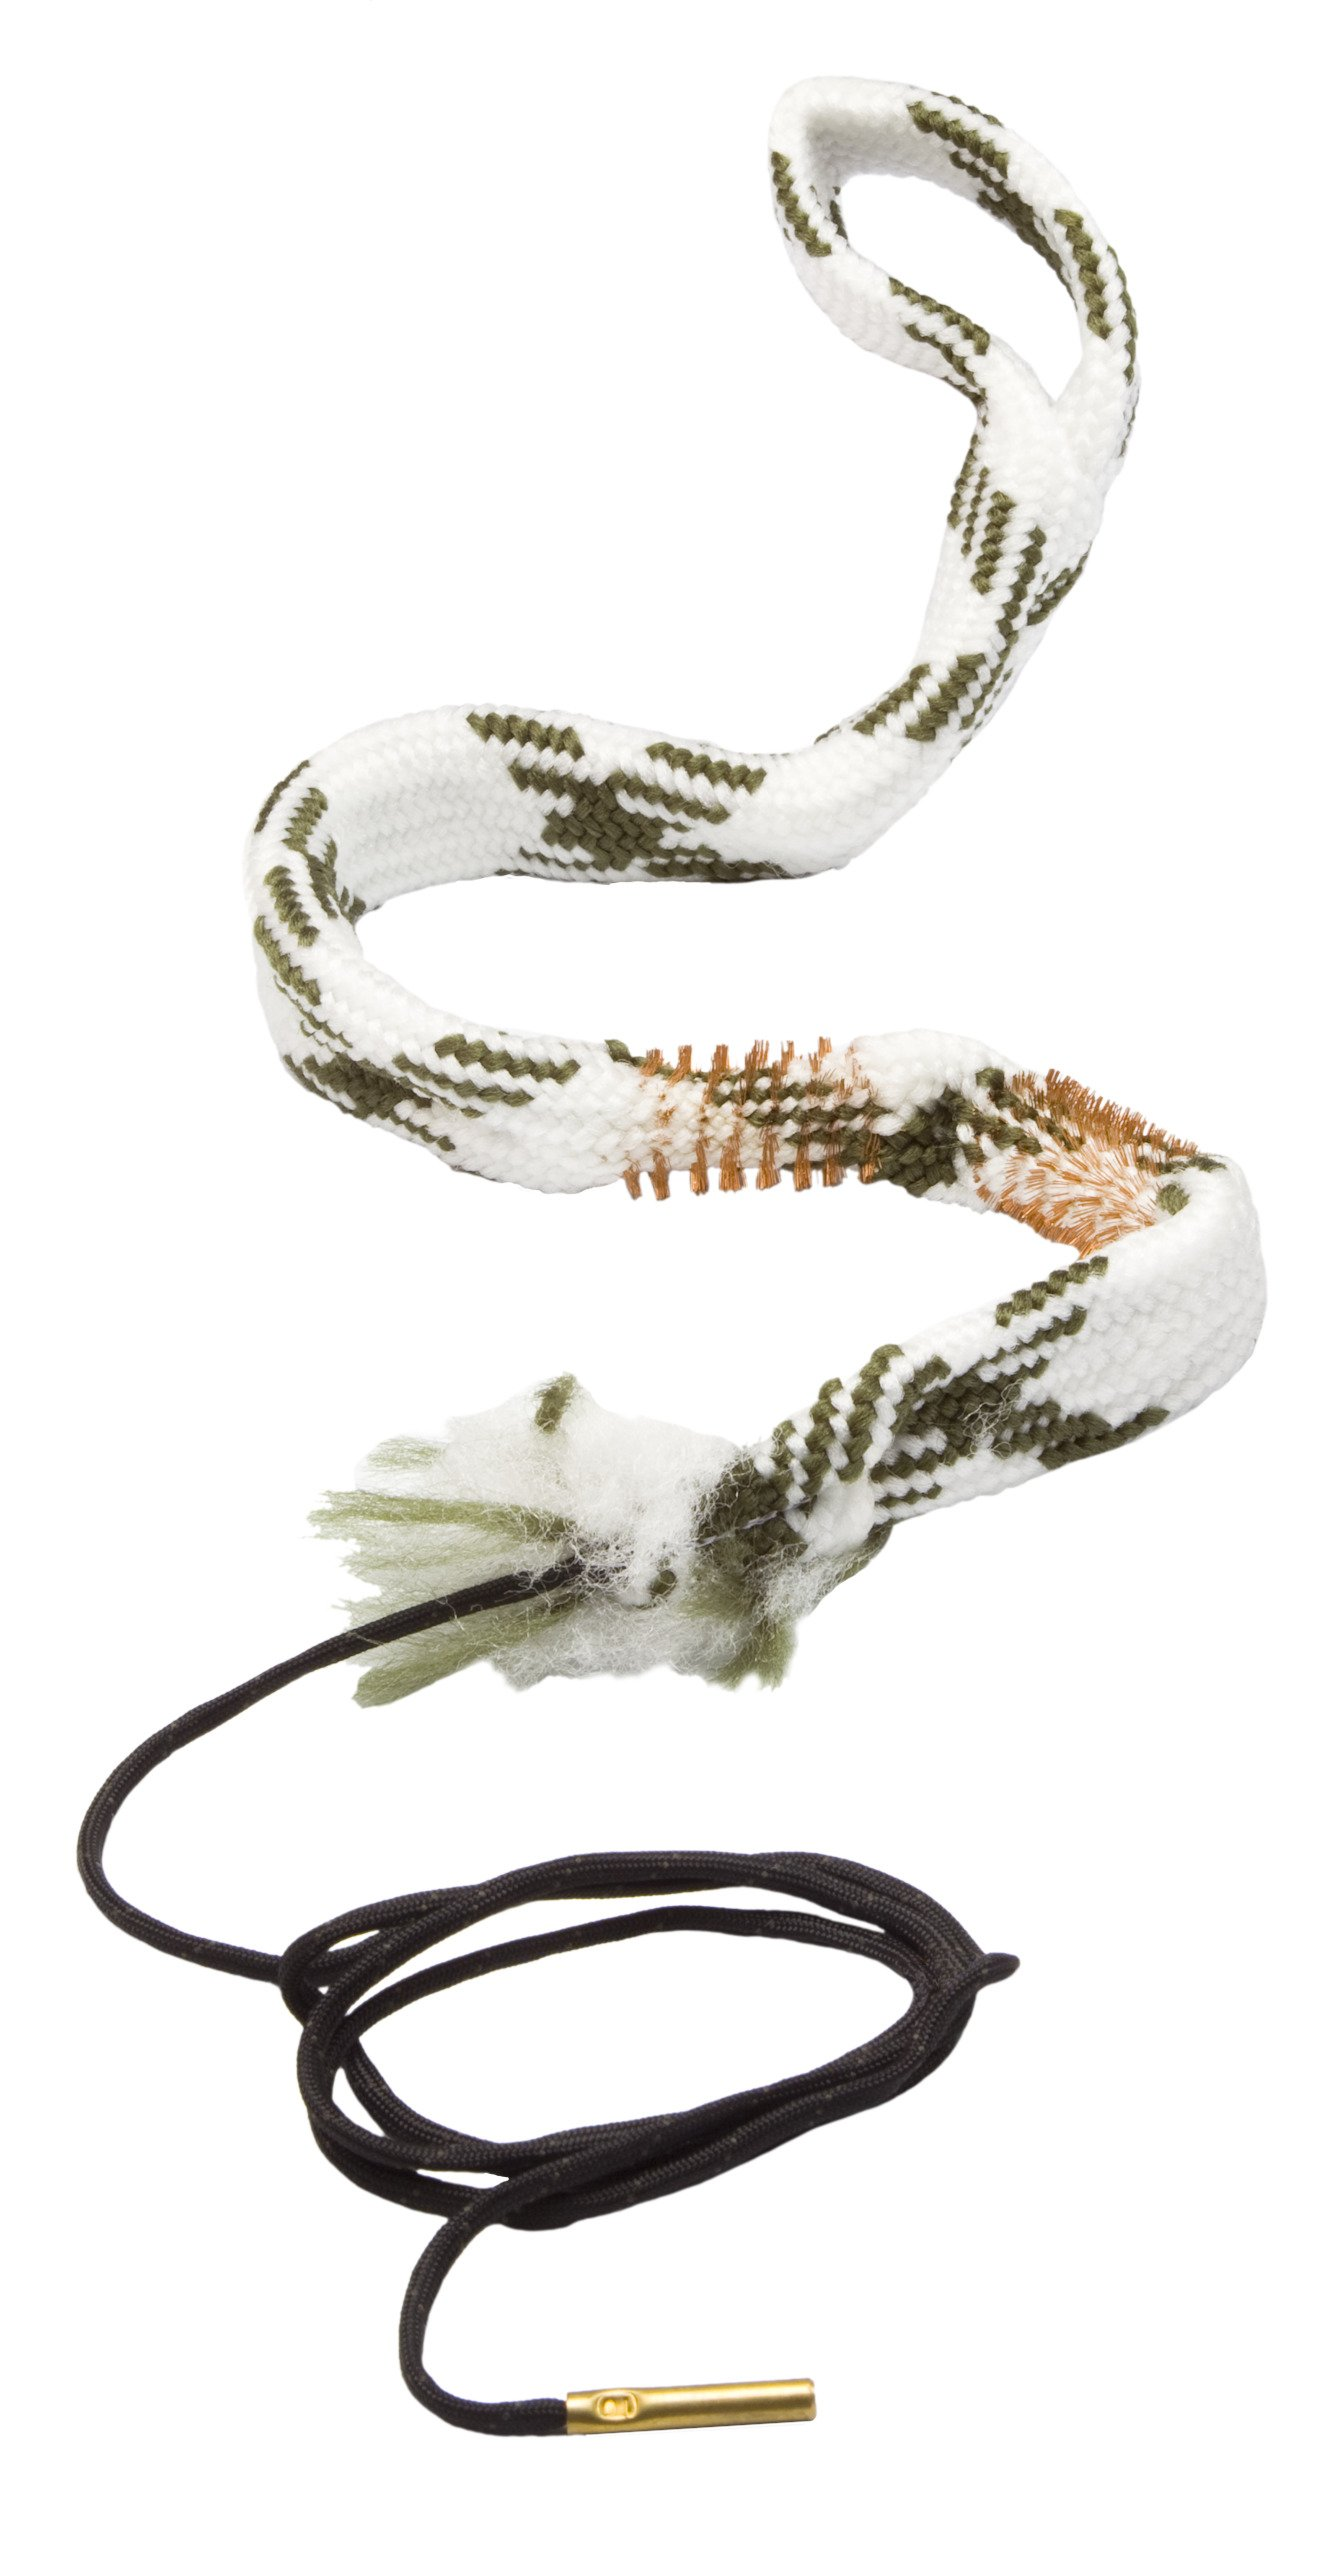 Hoppe's 24036 BoreSnake Shotgun Bore Cleaner, 10 Gauge by HOPPE'S